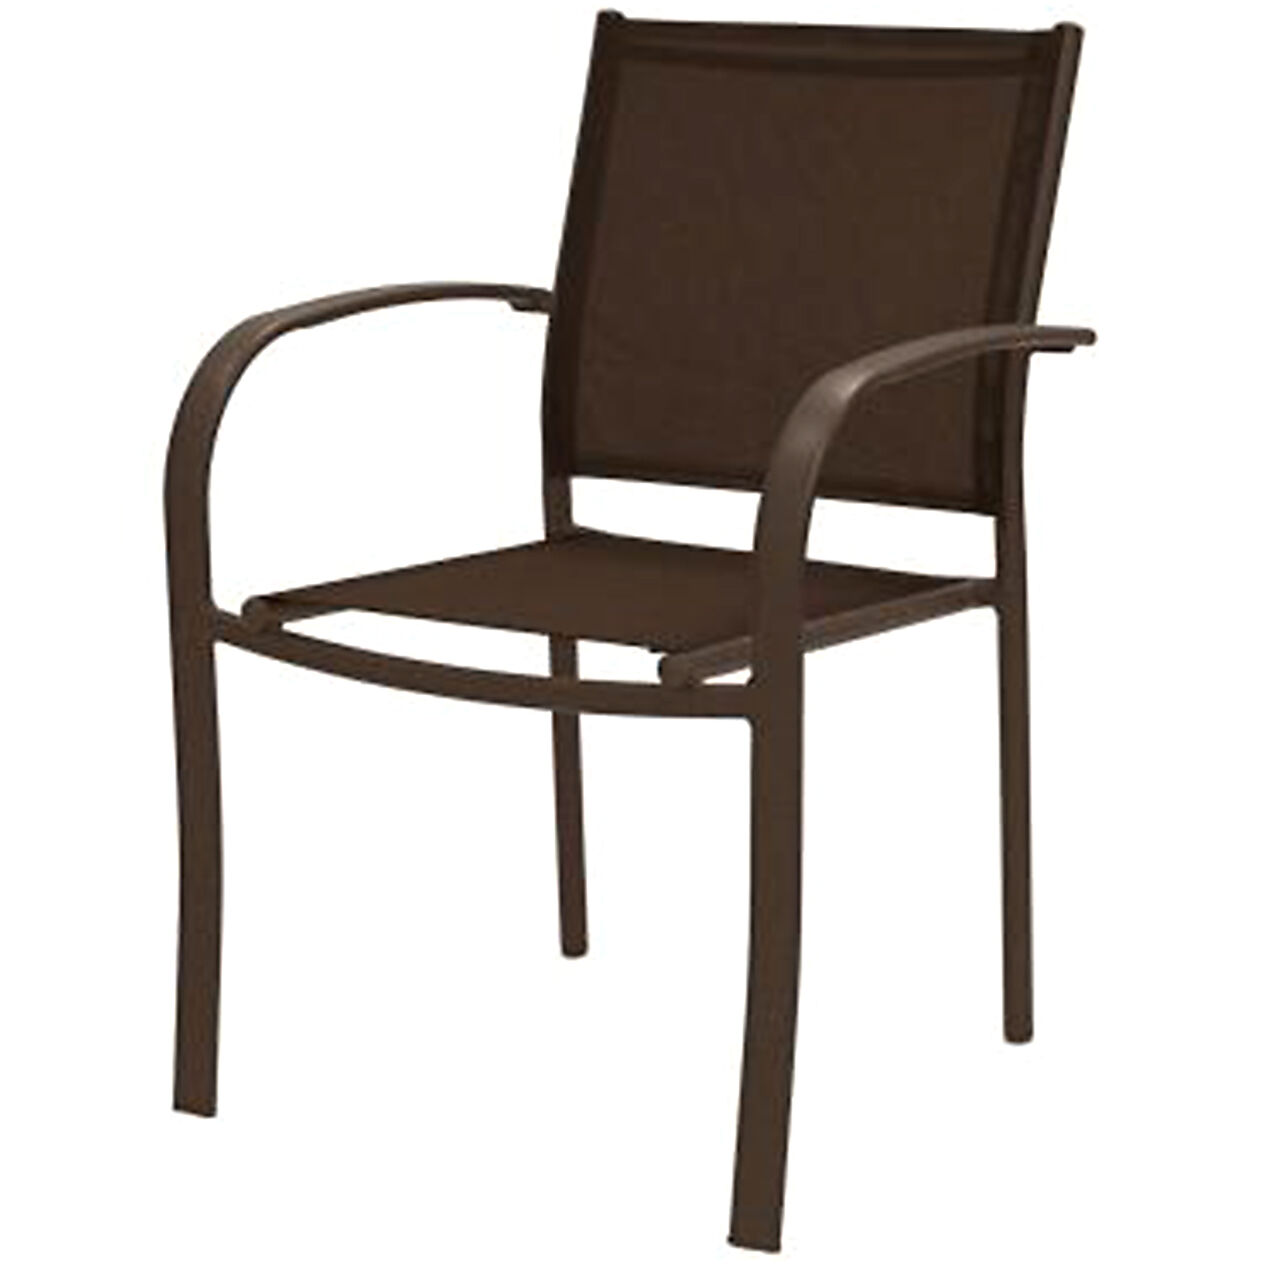 brown sling low back outdoor patio chair at home